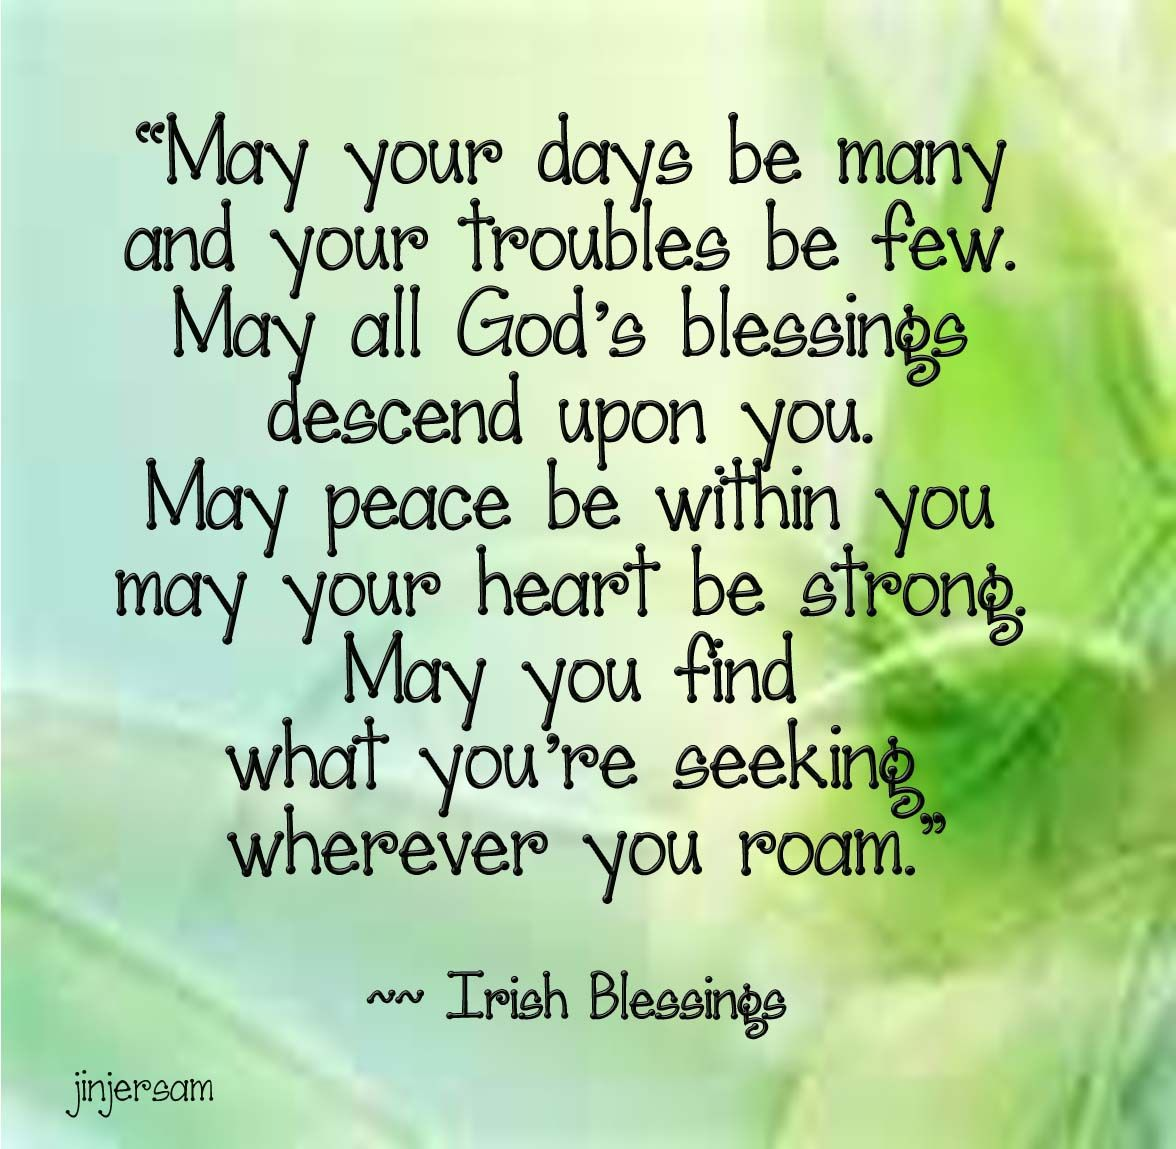 You Are A Blessing Quotes Irish Blessing  Libellés  Irish Blessing  Quotes From The Net